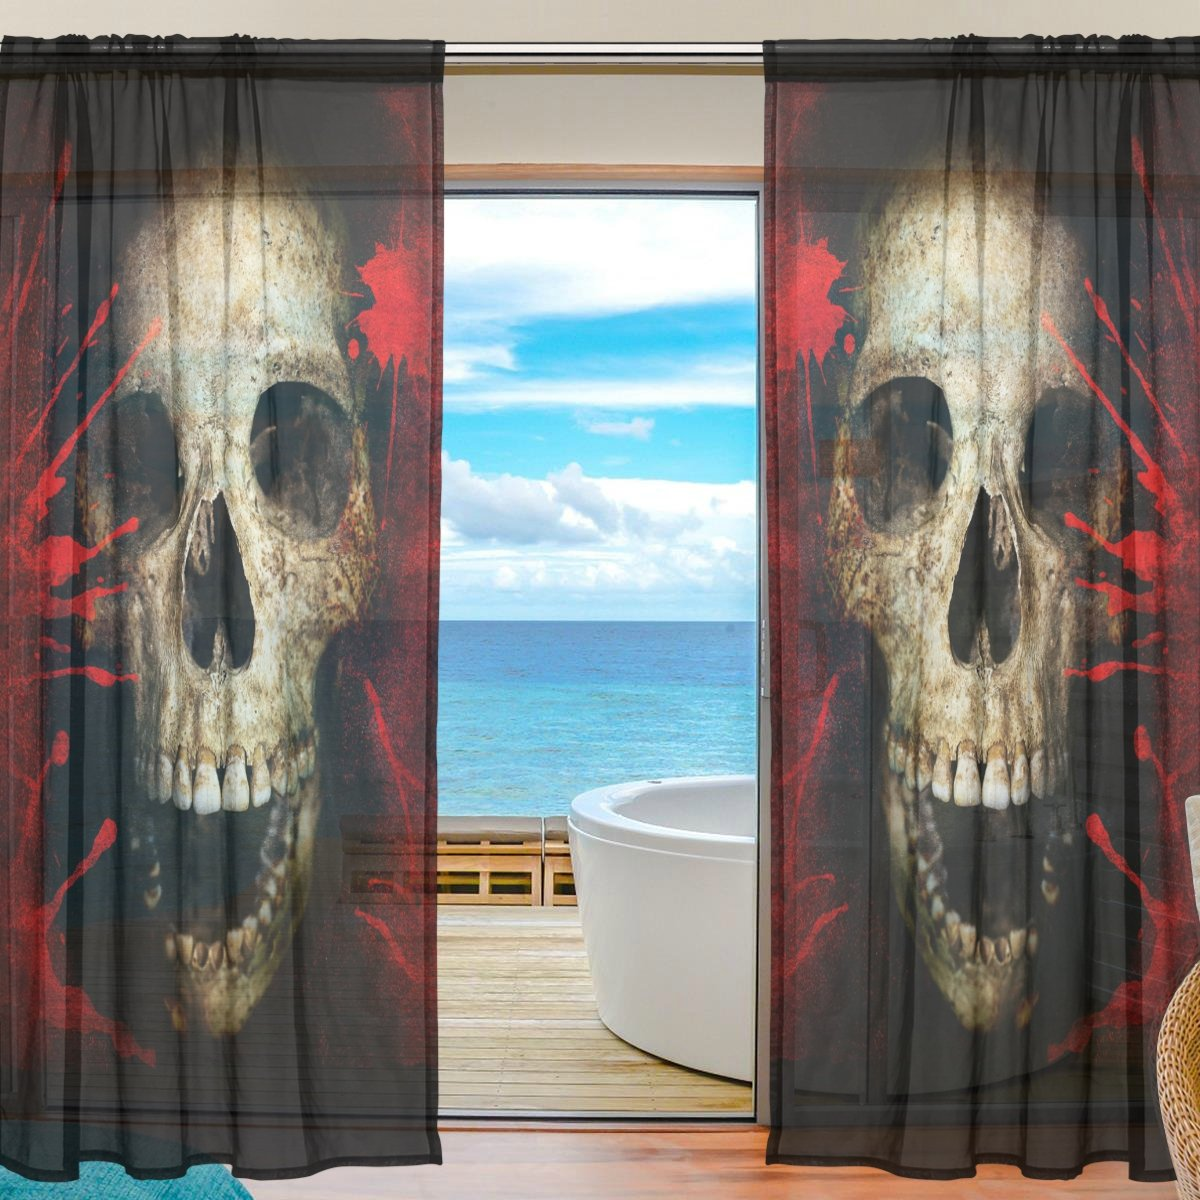 SEULIFE Window Sheer Curtain, Vintage Bloody Skull Halloween Voile Curtain Drapes for Door Kitchen Living Room Bedroom 55x78 inches 2 Panels